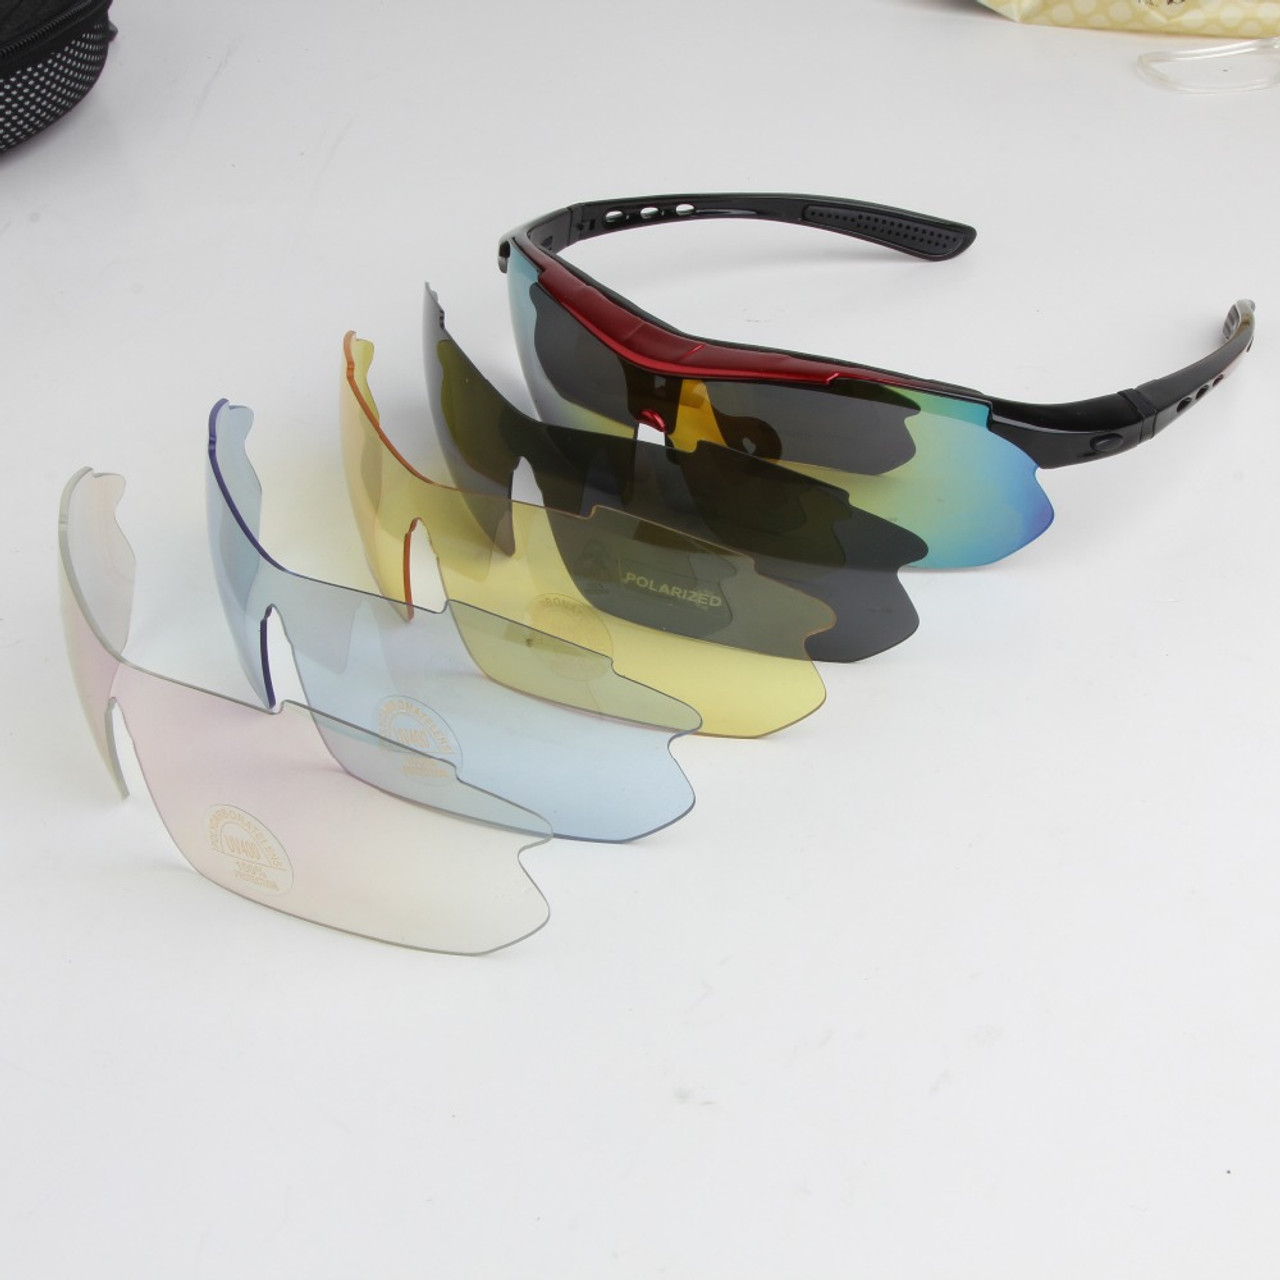 3045e78aa0 ... 2018 Polarized Cycling Glasses Bike Outdoor Sports Bicycle Sunglasses  For Men Women Goggles Eyewear 5 Lens ...